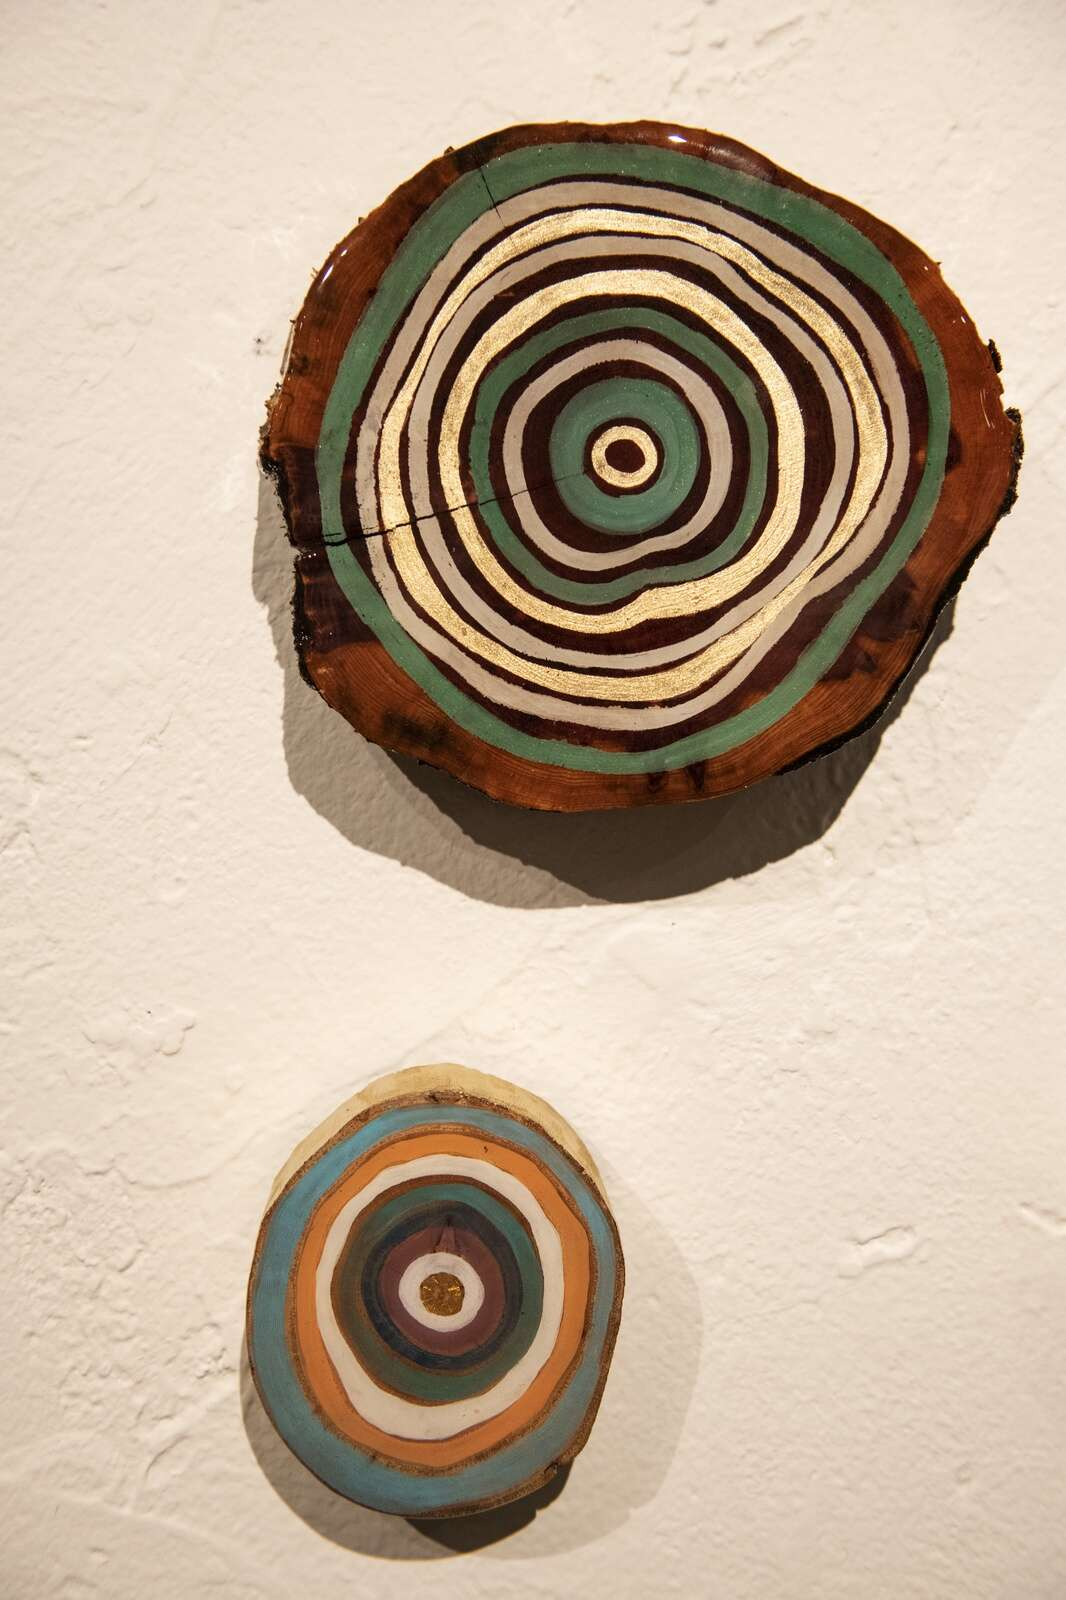 Pieces by Nicol Gogolak are displayed in the Aspen Chapel Gallery for the Small Wonders holiday show and sale on Tuesday, Nov. 17, 2020. (Kelsey Brunner/The Aspen Times)